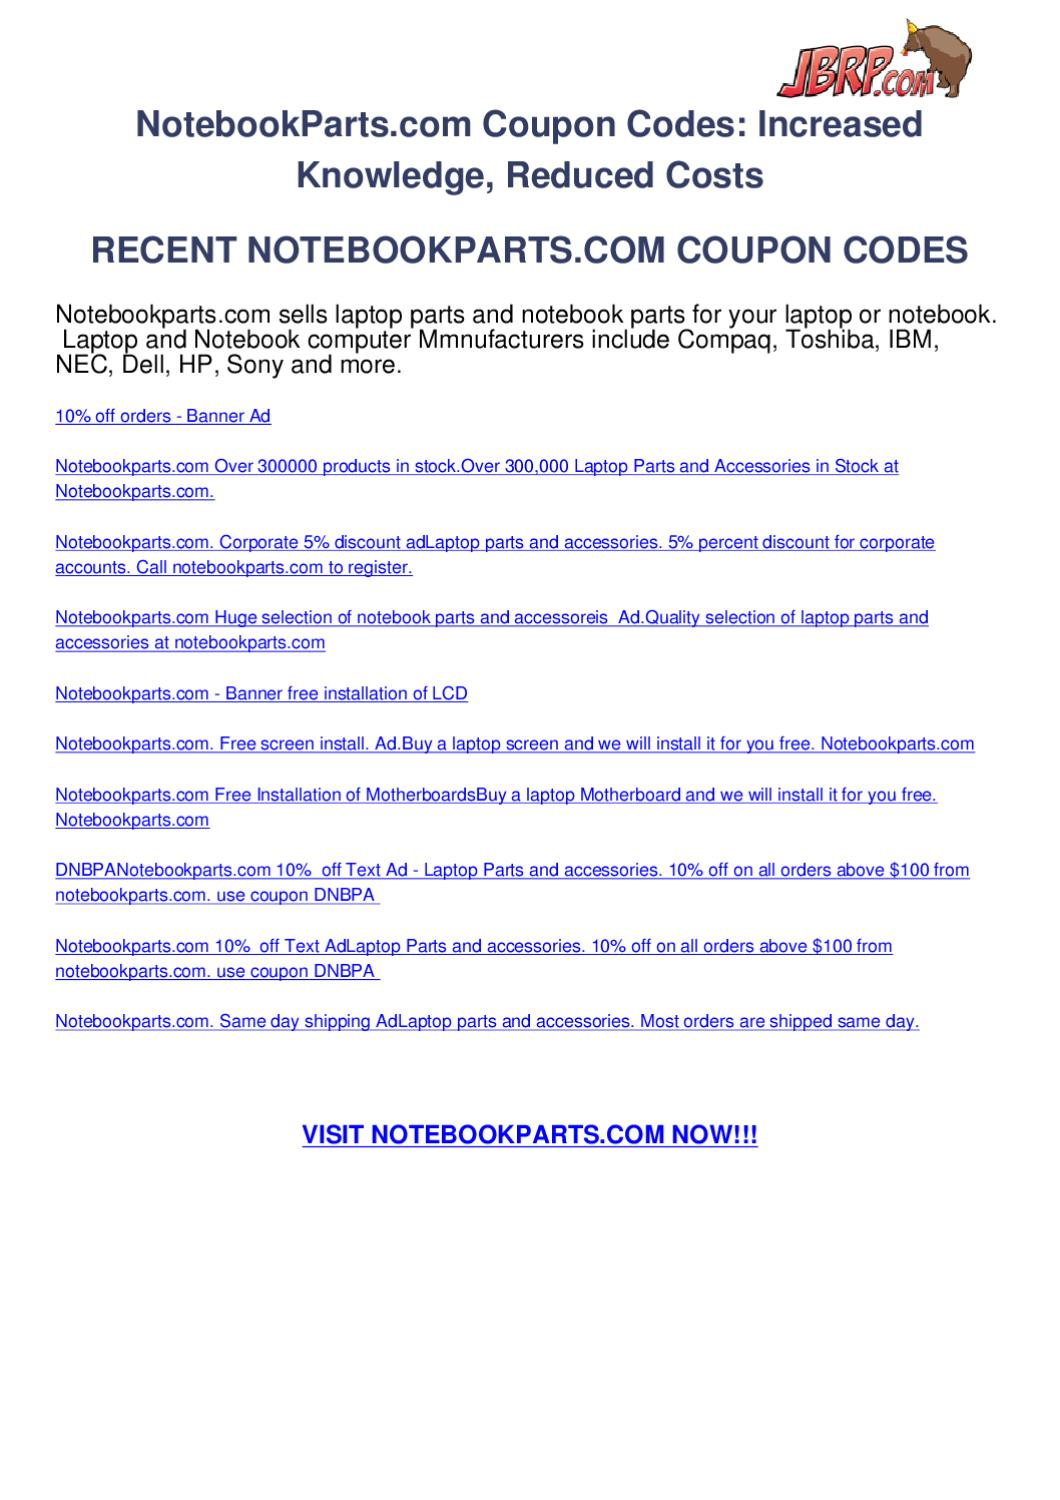 coupon for notebookparts.com